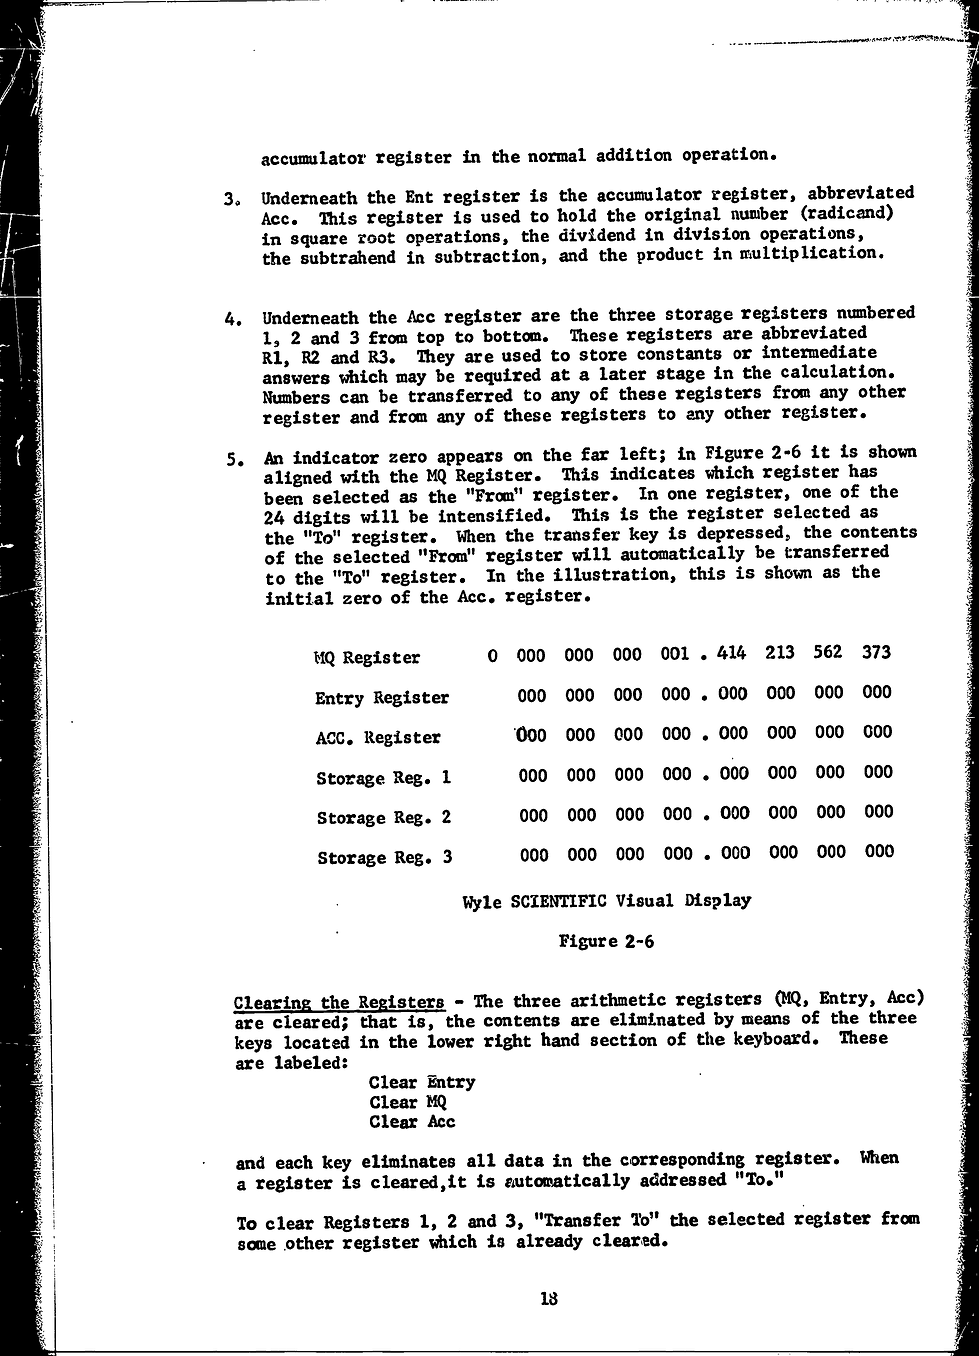 WYLE Instruction_Page_028_Image_0001.tif